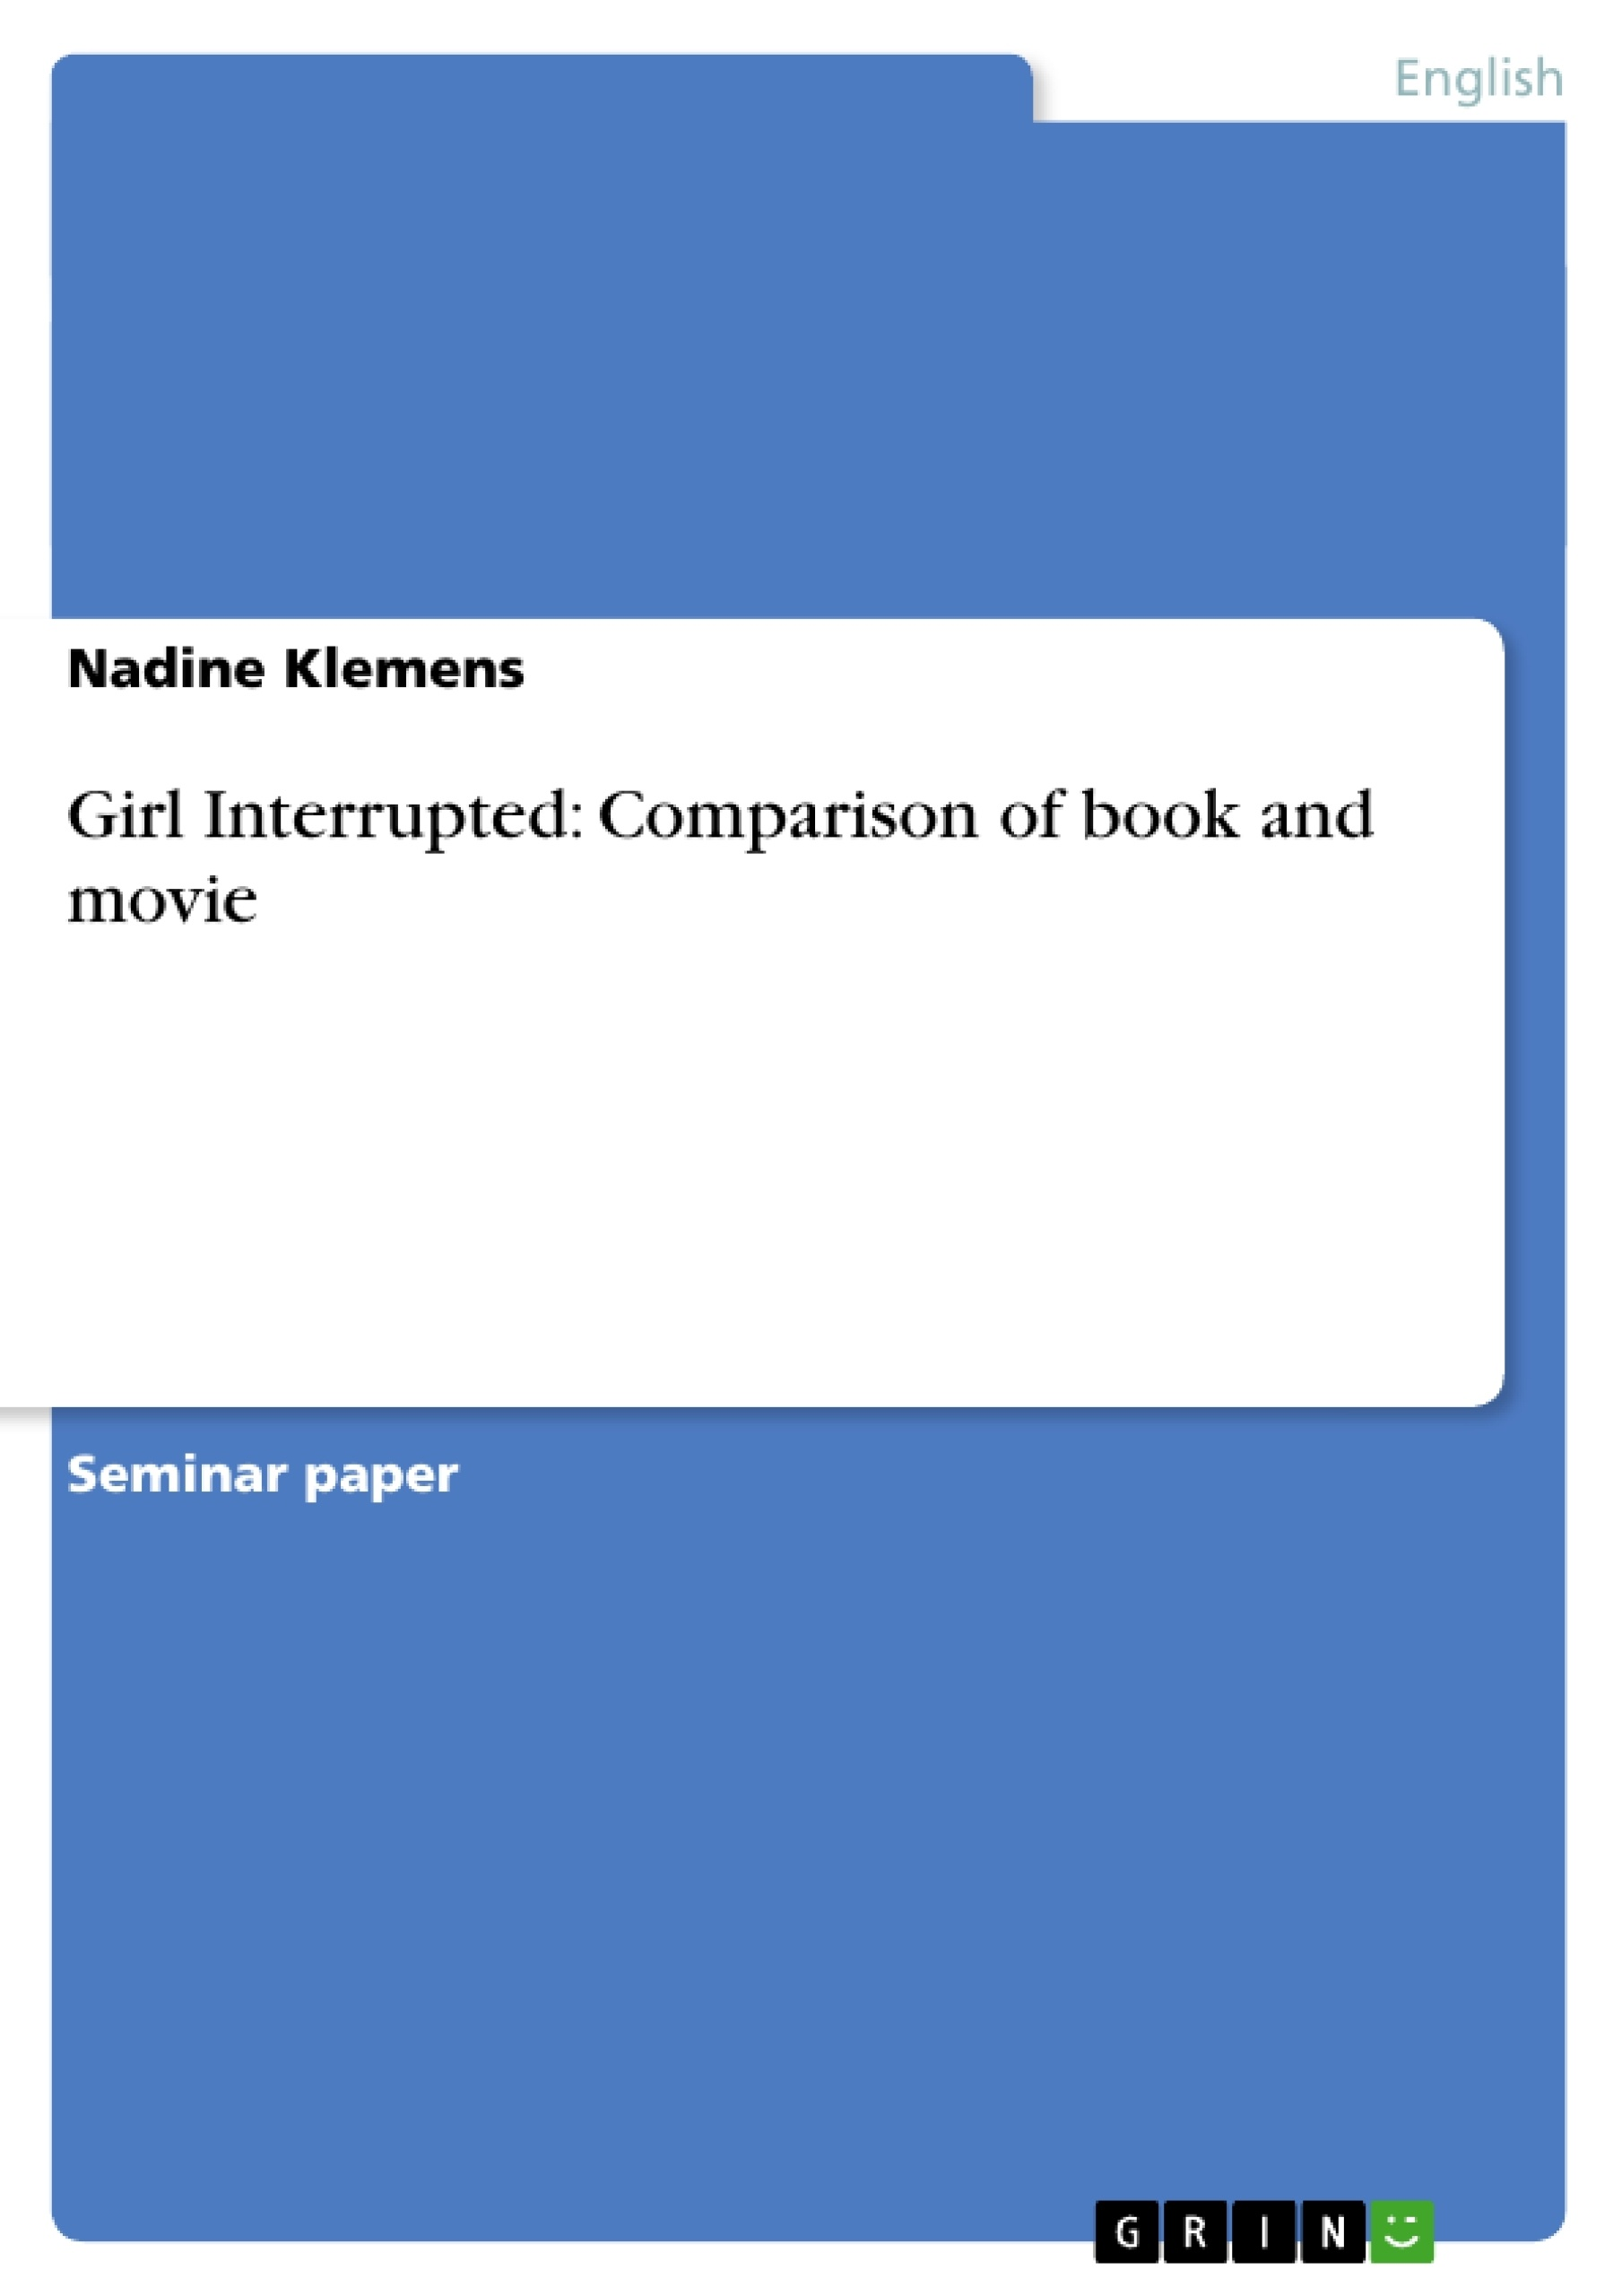 girl interrupted comparison of book and movie publish your upload your own papers earn money and win an iphone 7